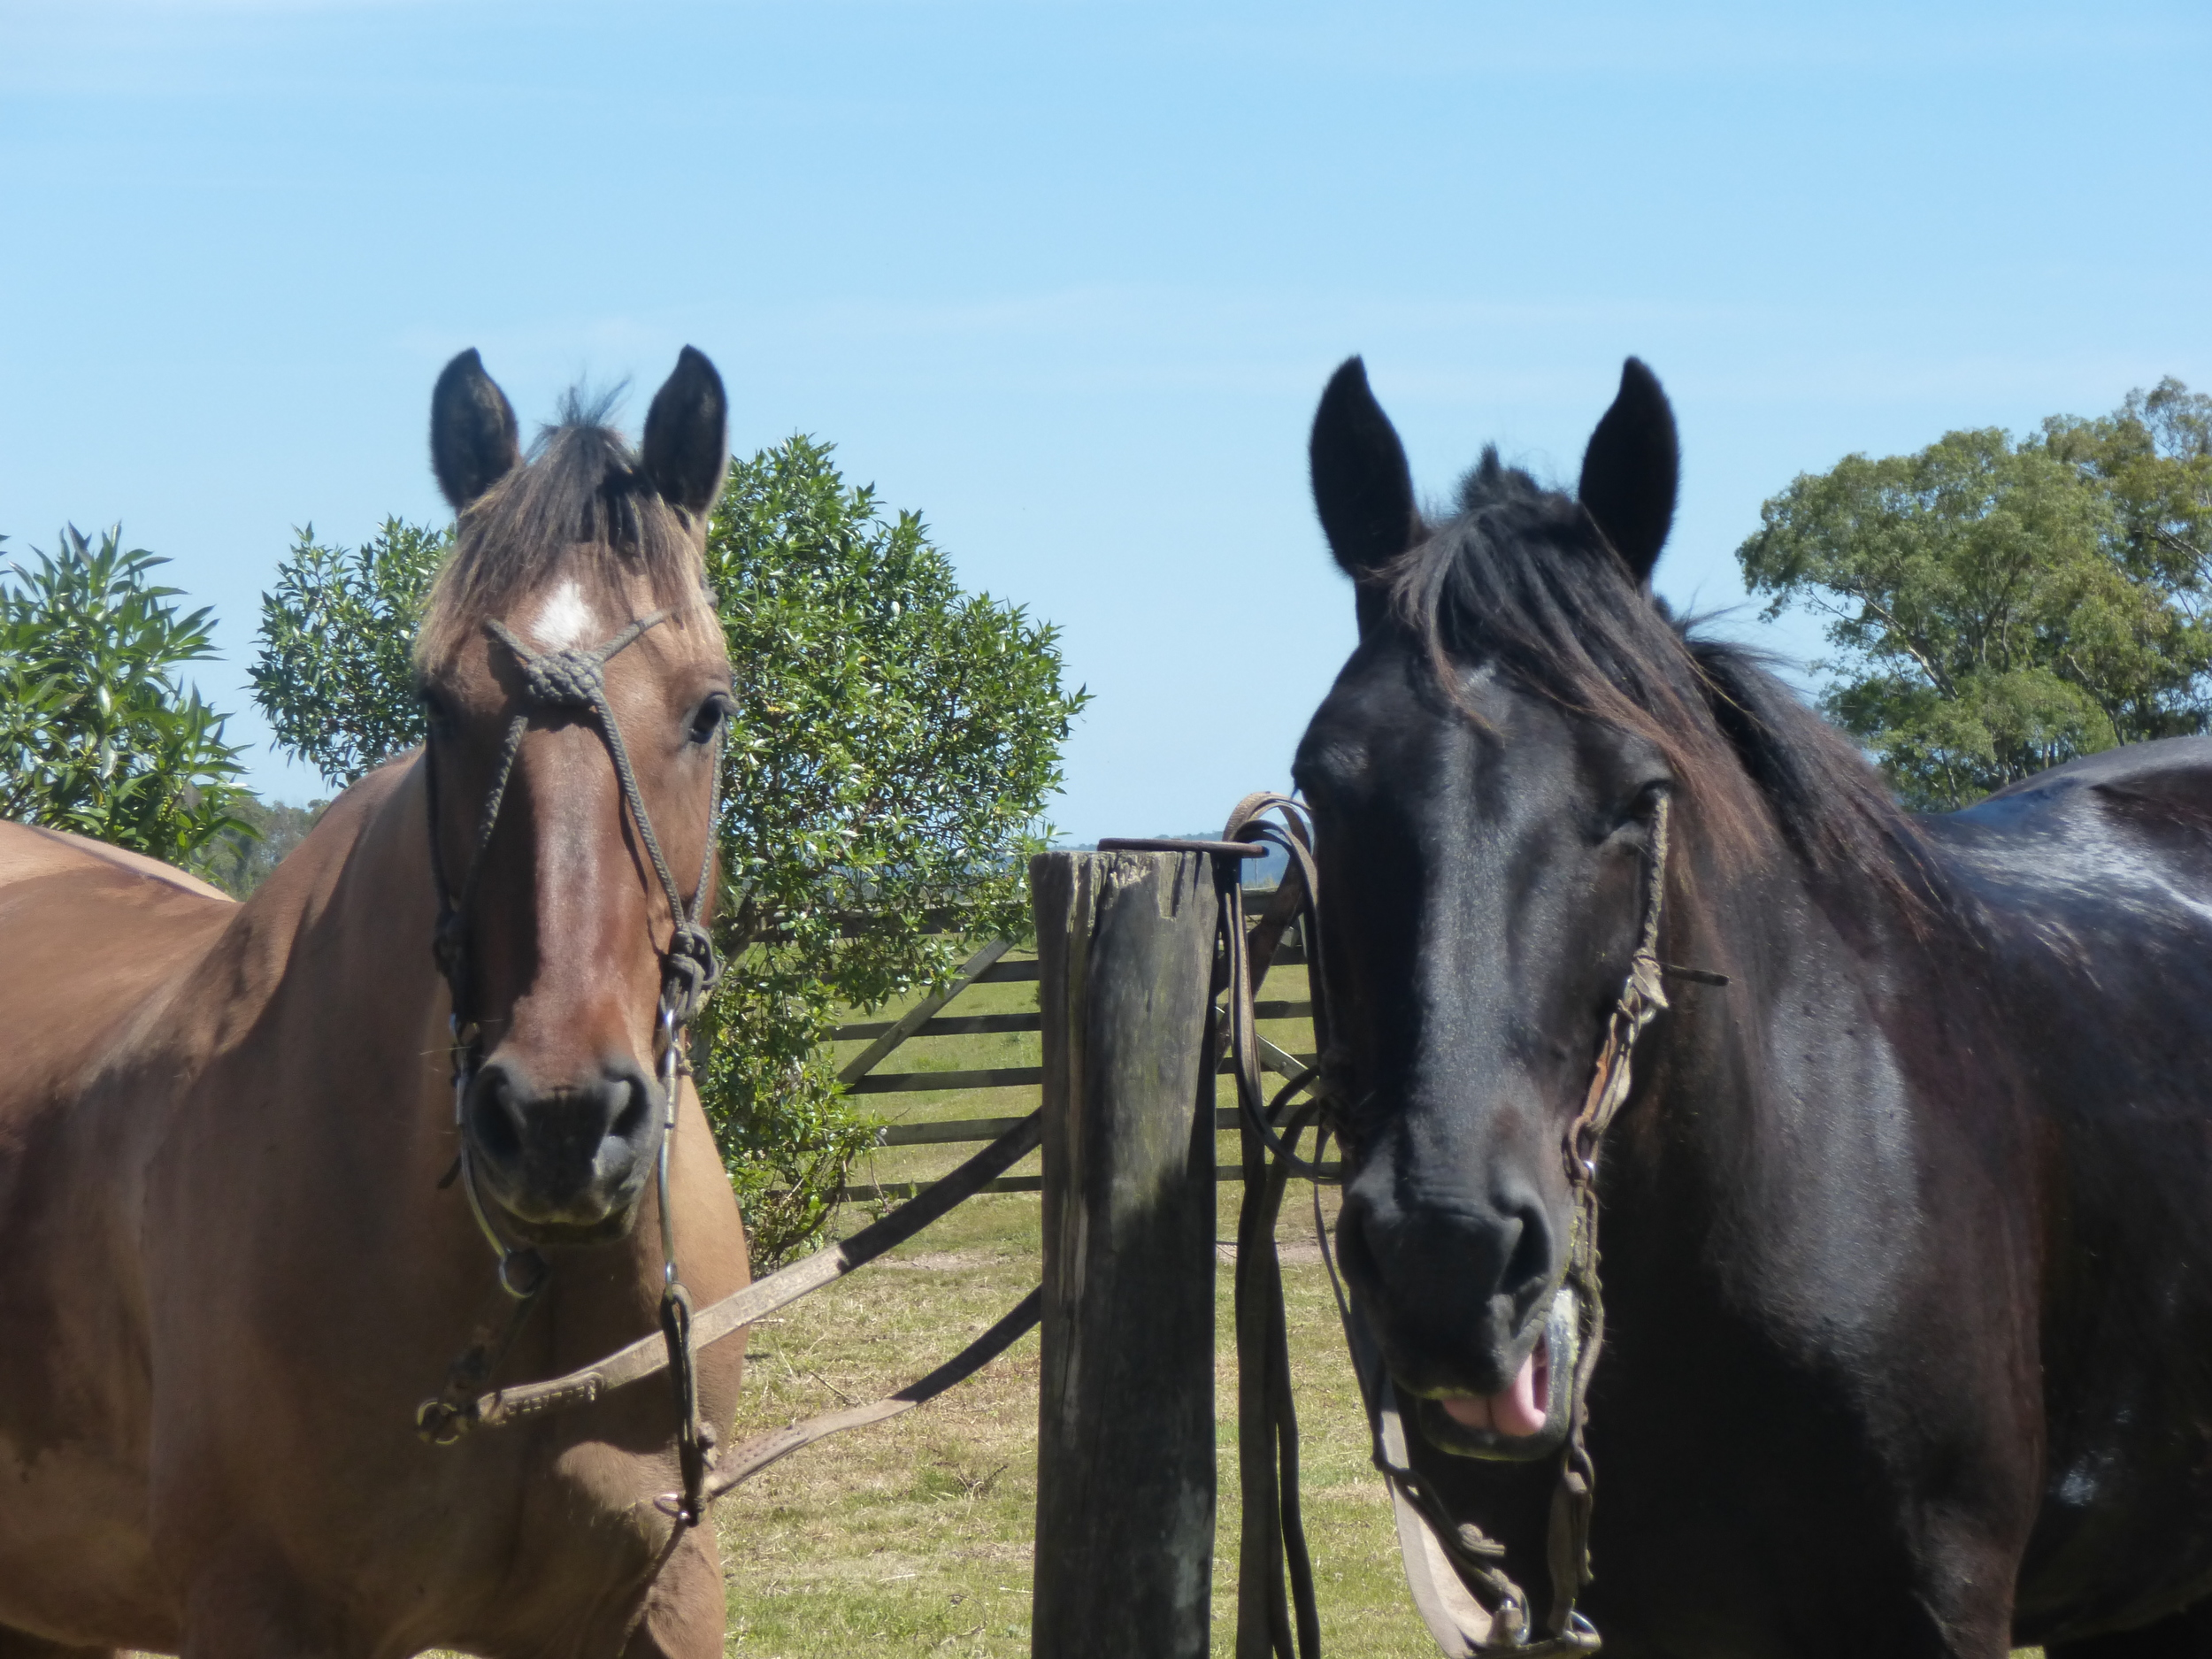 Tablita & Negro - two of the horses in Uruguay. Tablita is half Arab, a little horse with a long stride and a quick turn of paces. Negro coudn't be more different, a lovely, strong, solid horse with a steady gait.